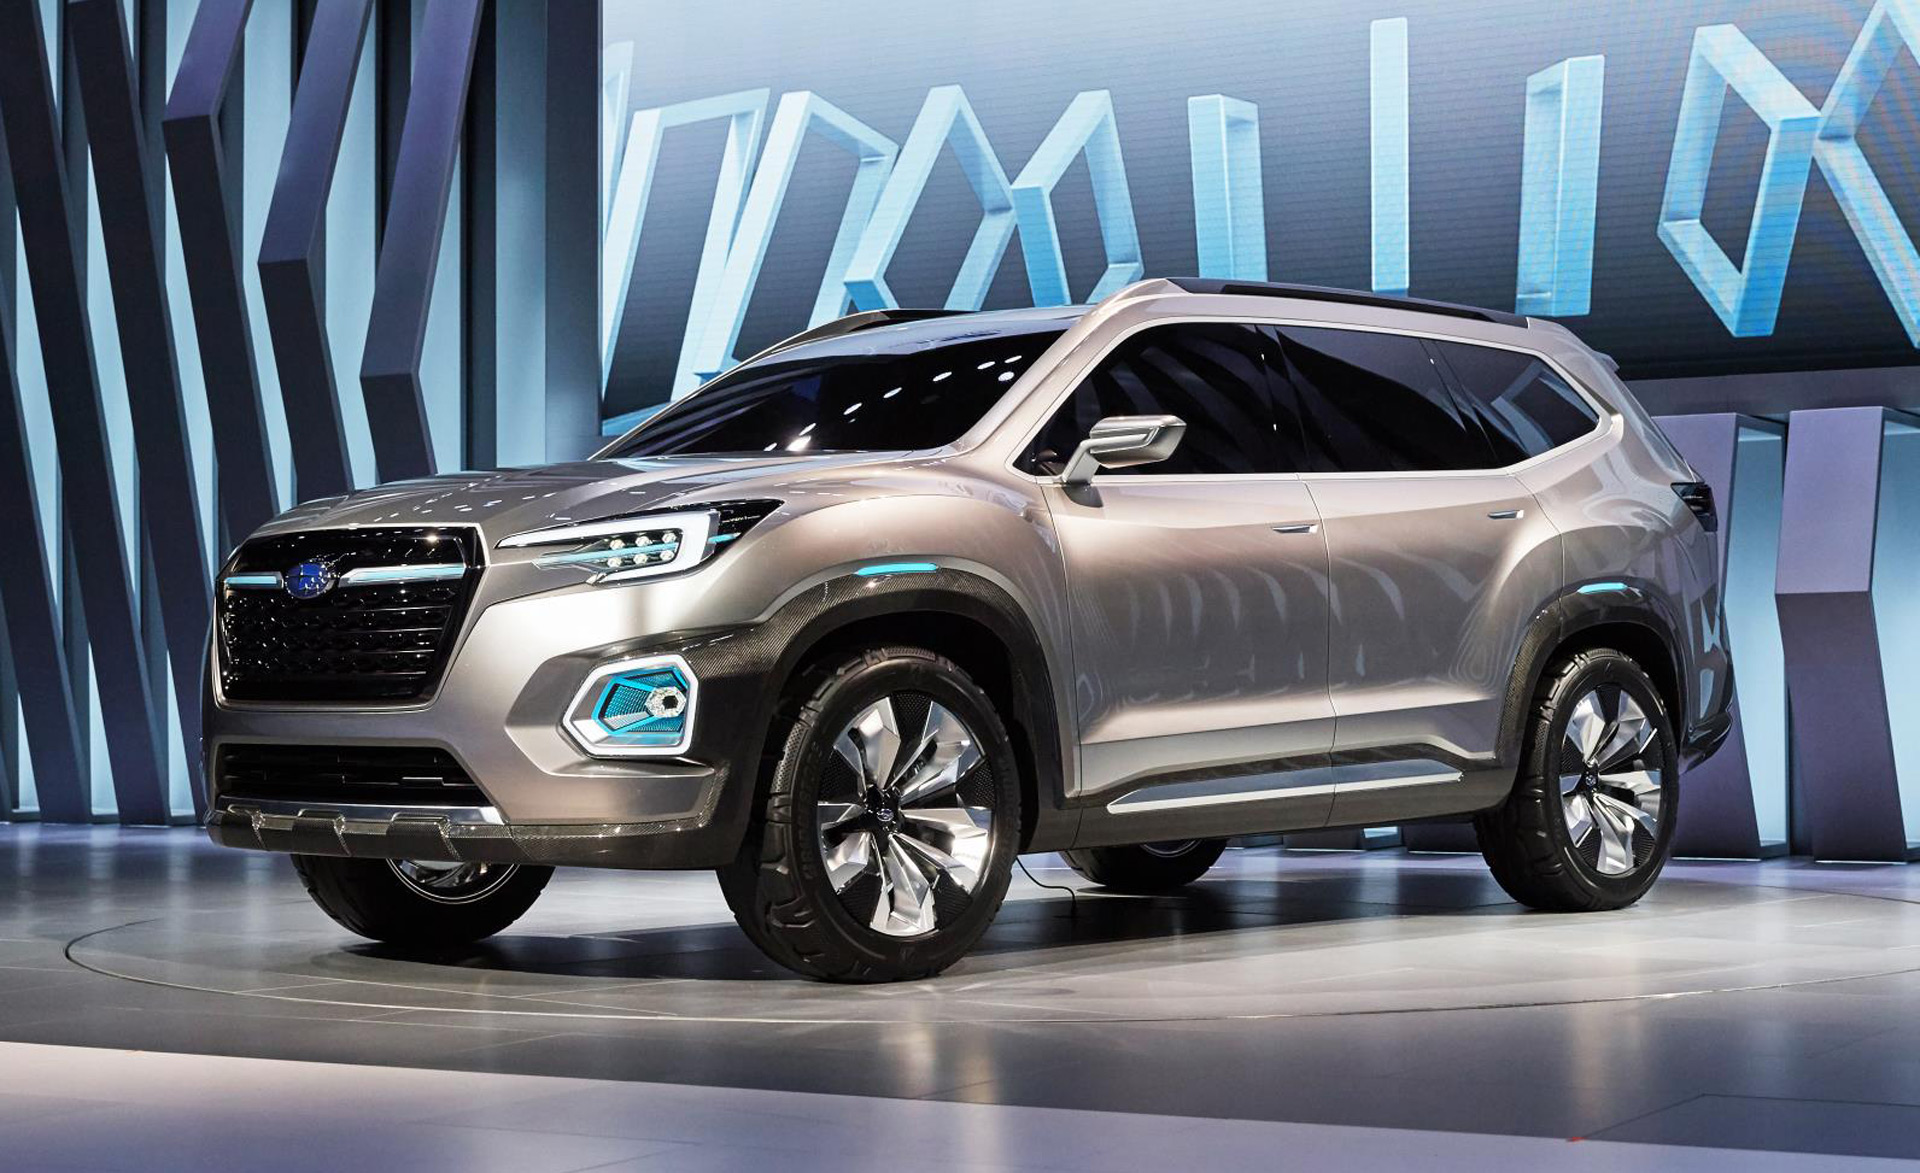 Subaru Viziv 7 Concept Previews 3 Row Suv Coming In 2018